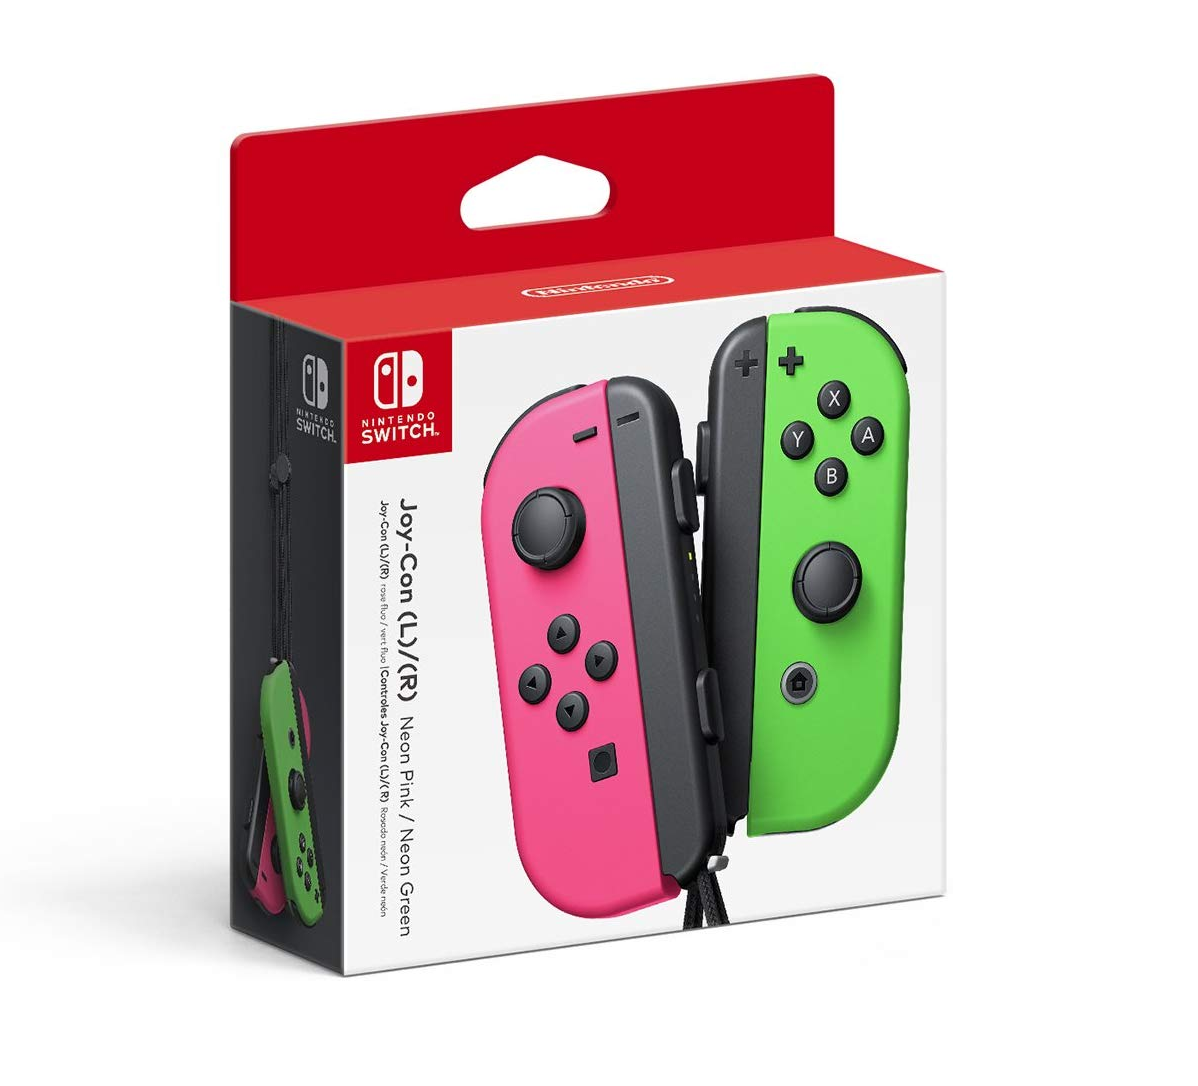 Joy-Cons (various colors) - on sale for $60 (was $80) at Amazon